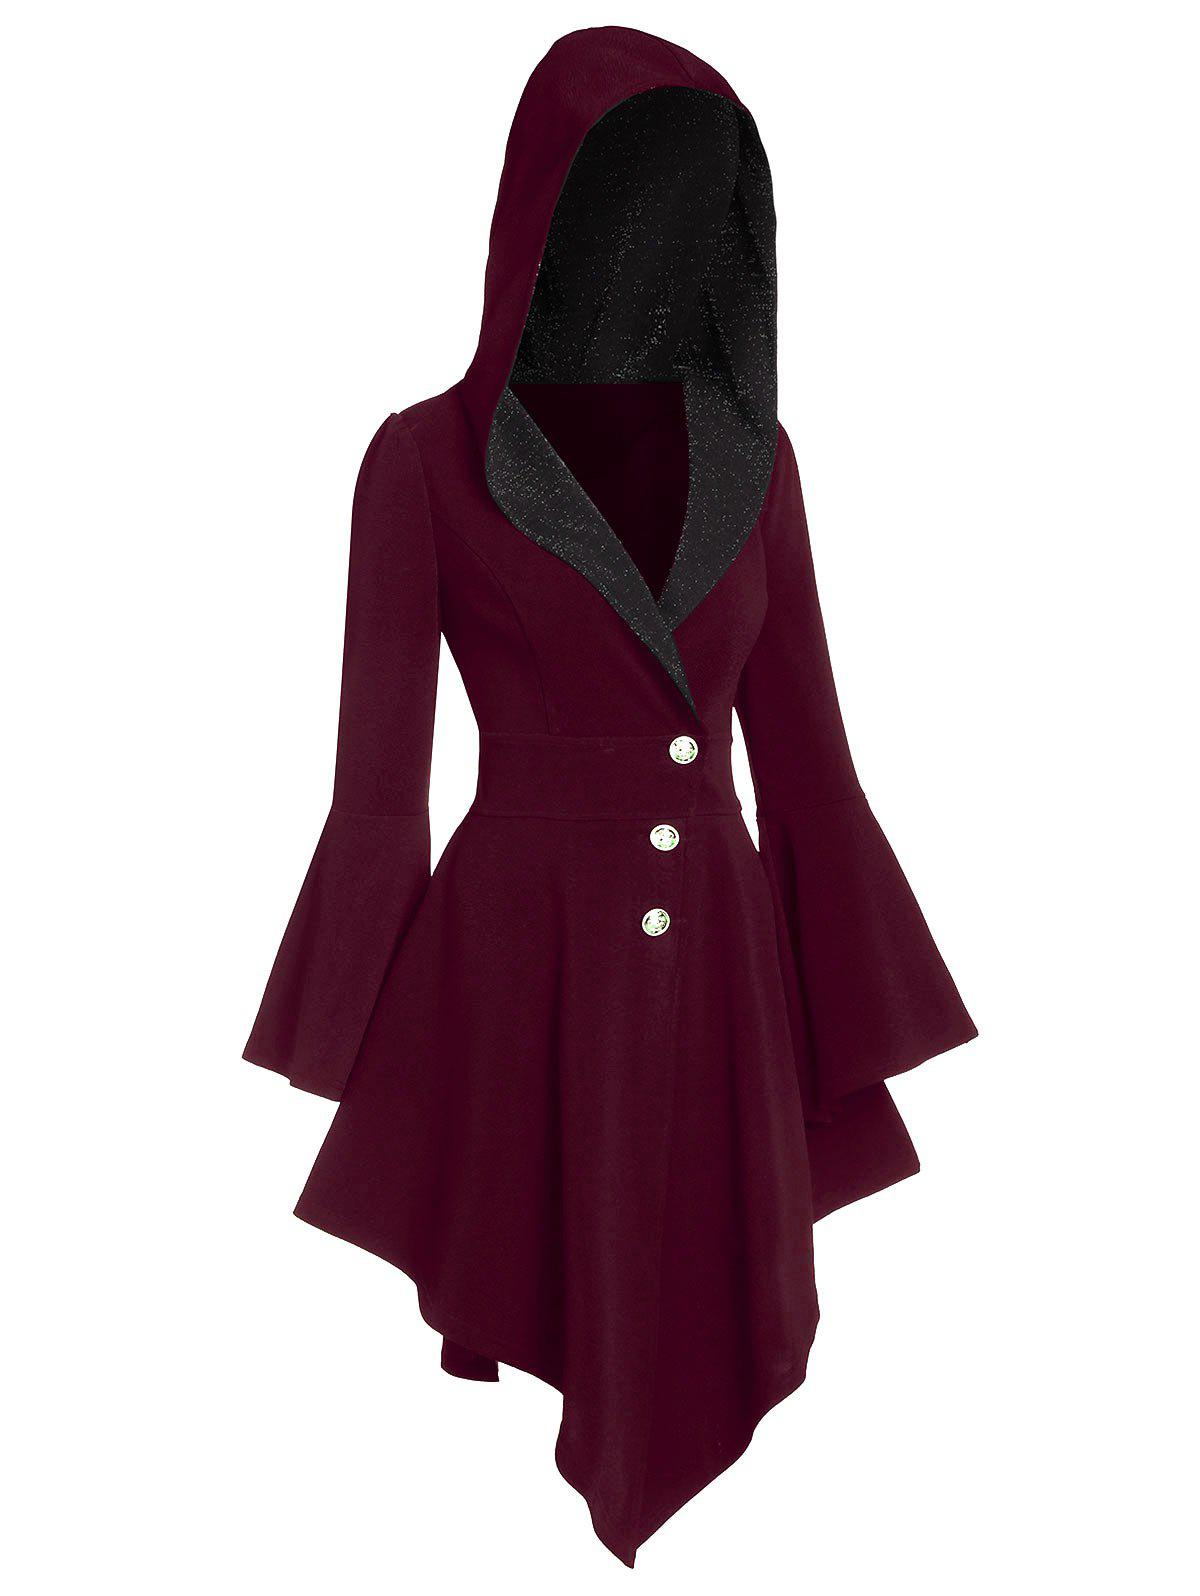 Discount Hooded Asymmetrical Glitter Coat